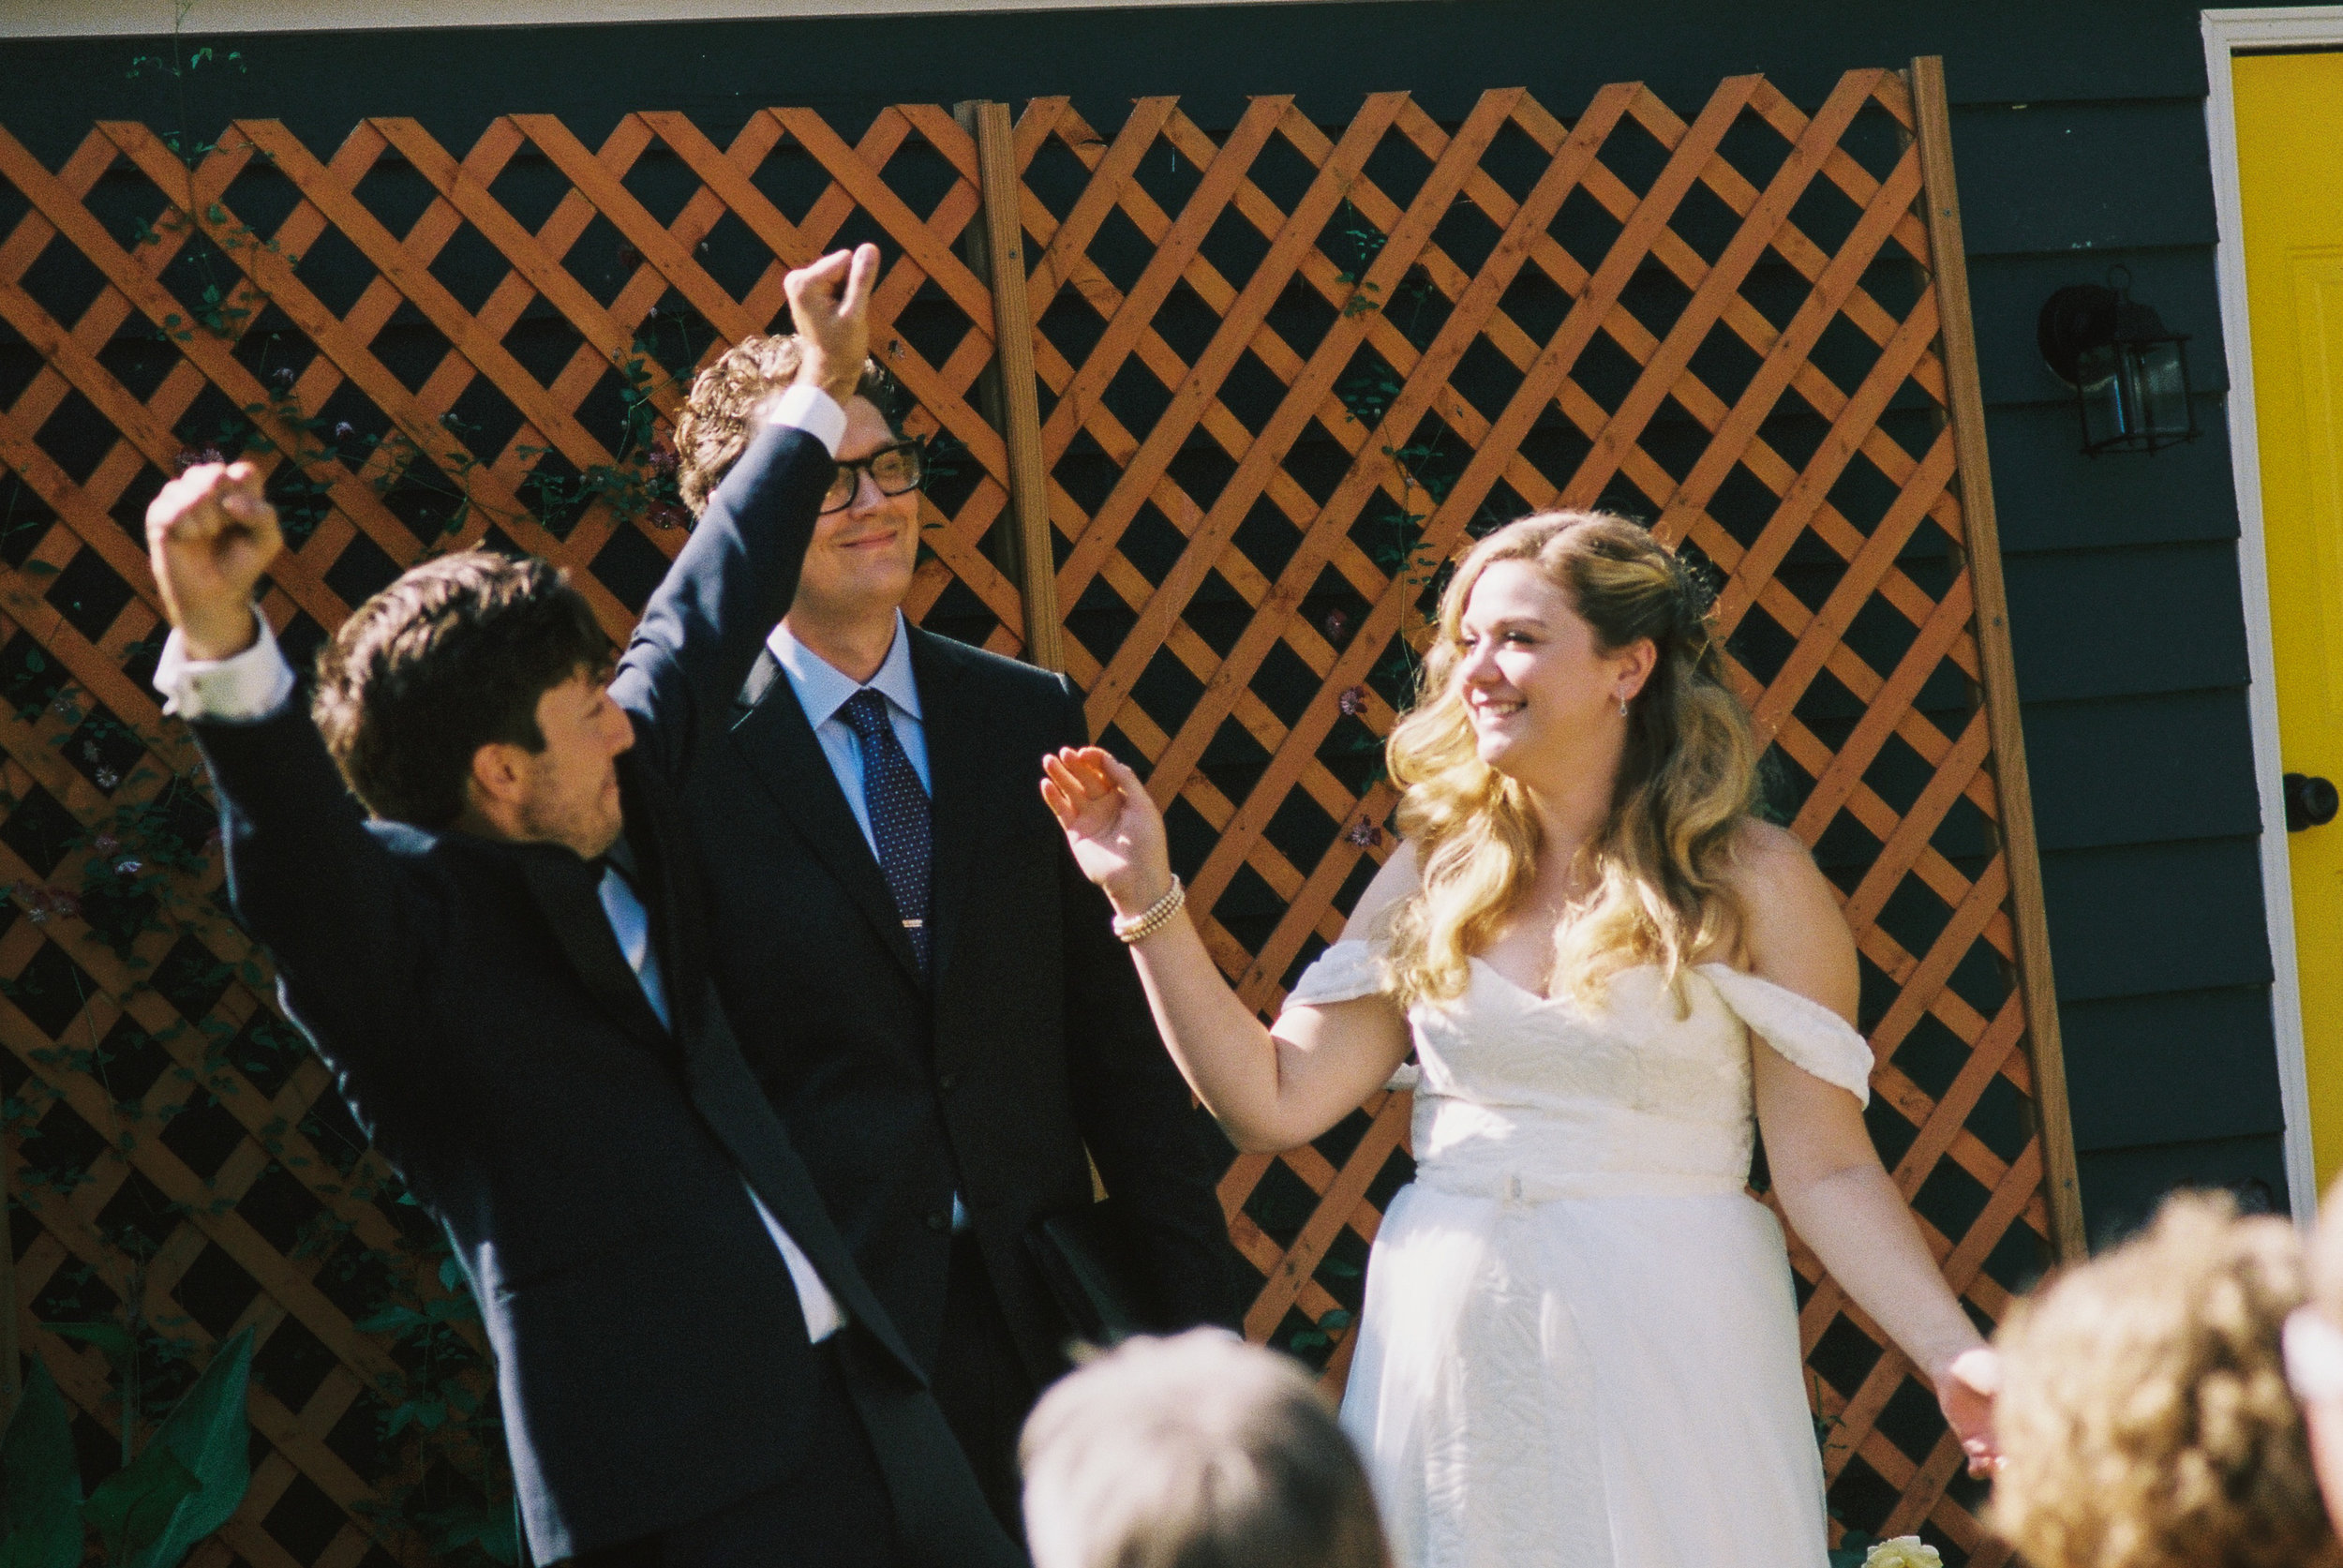 Eric and Kelsey, married!